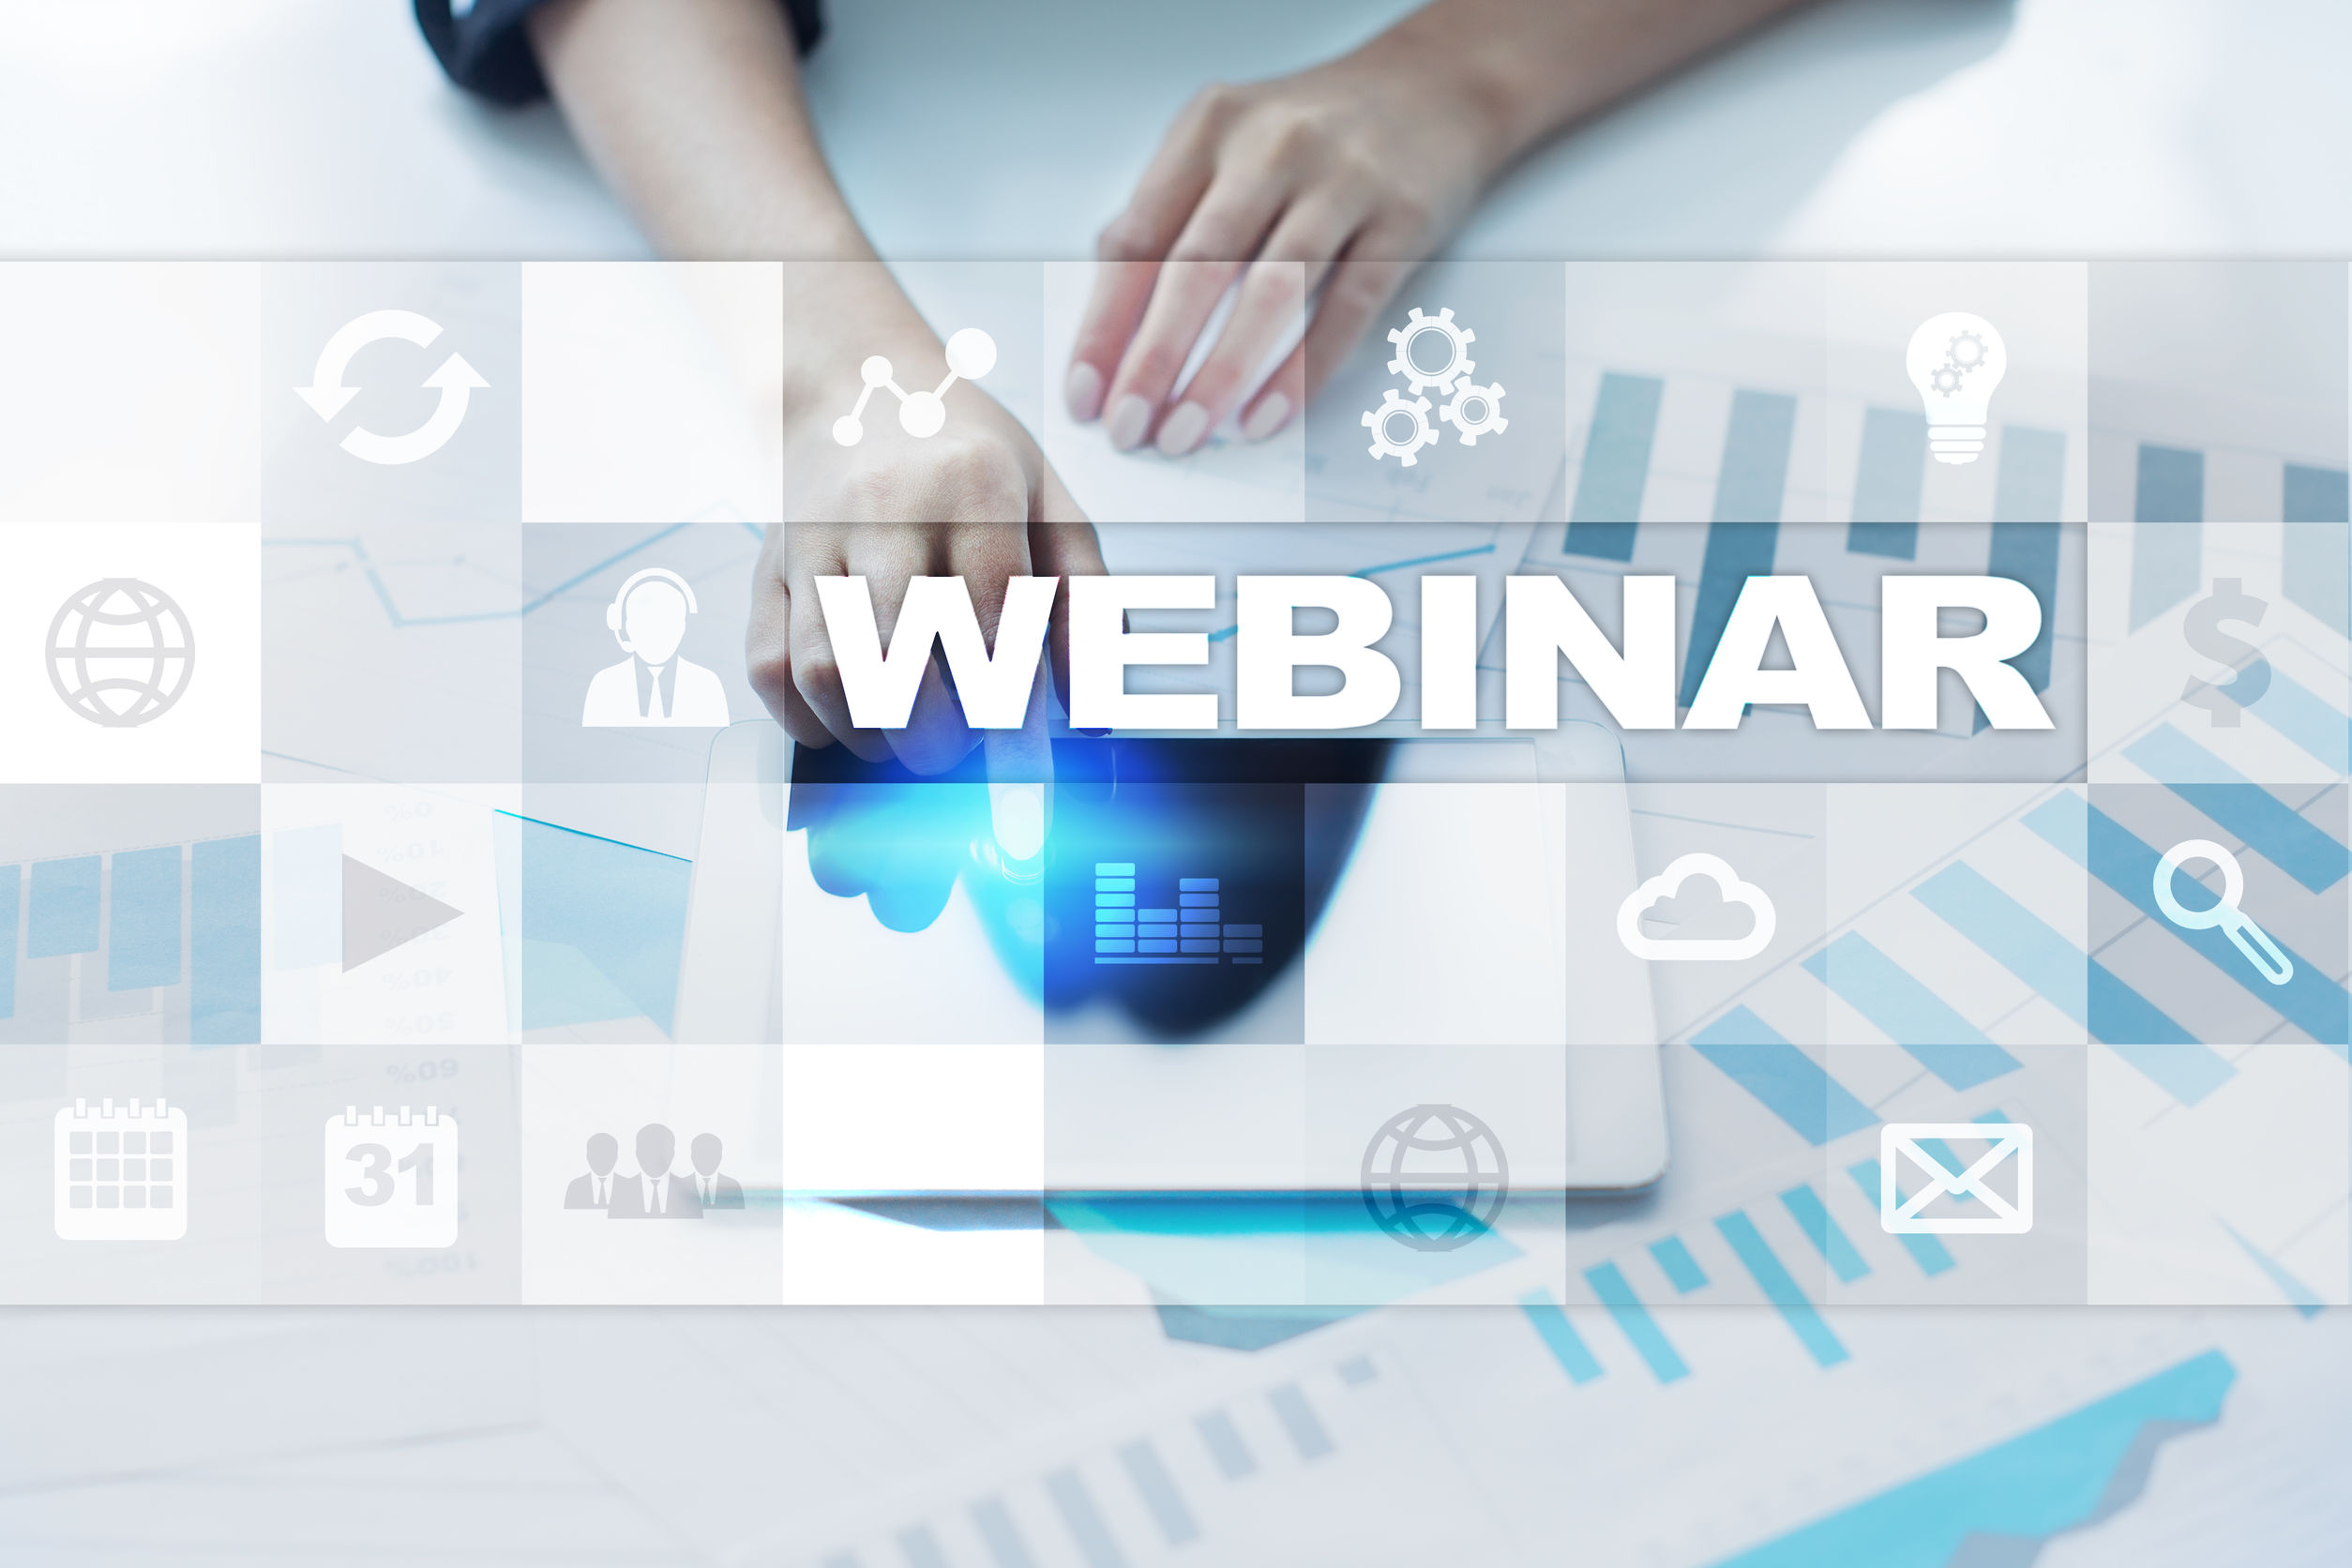 Learn How aACE Can Help You Streamline Your Business in Our November Webinars